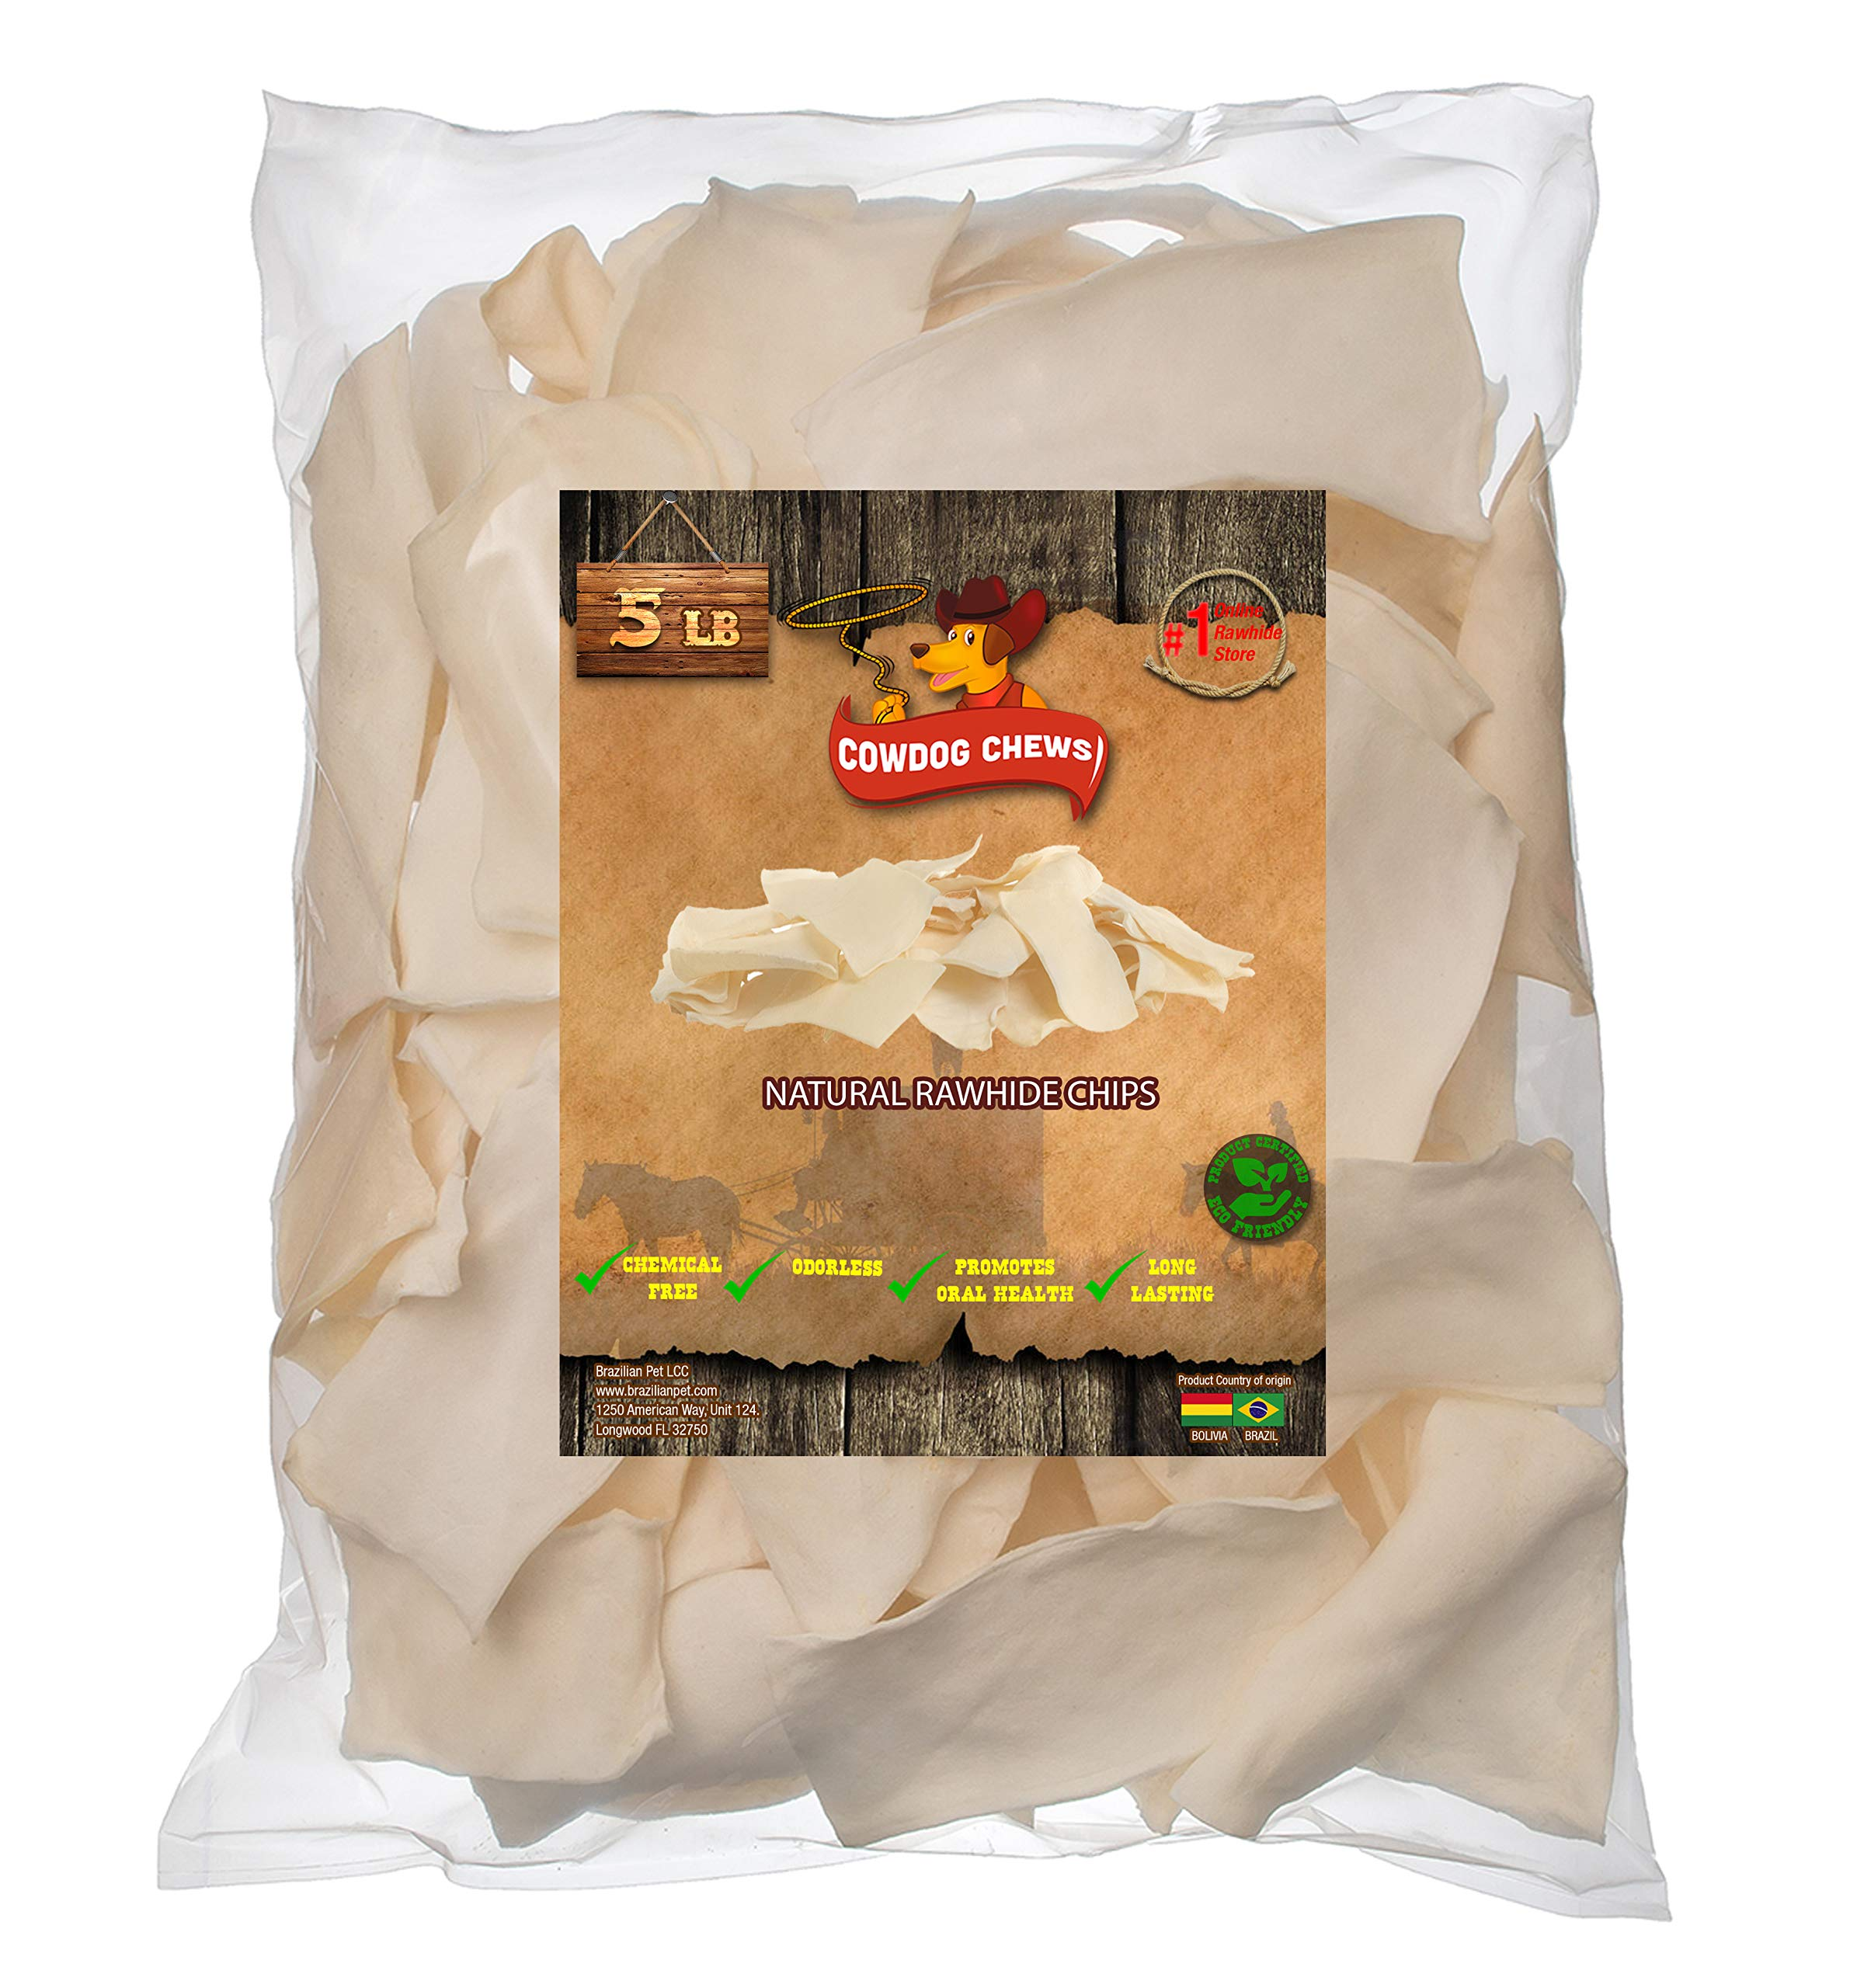 dog supplies online cowdog chews natural rawhide chips - premium long-lasting dog treats with thick cut beef hides, processed without additives or chemicals (5 pounds)